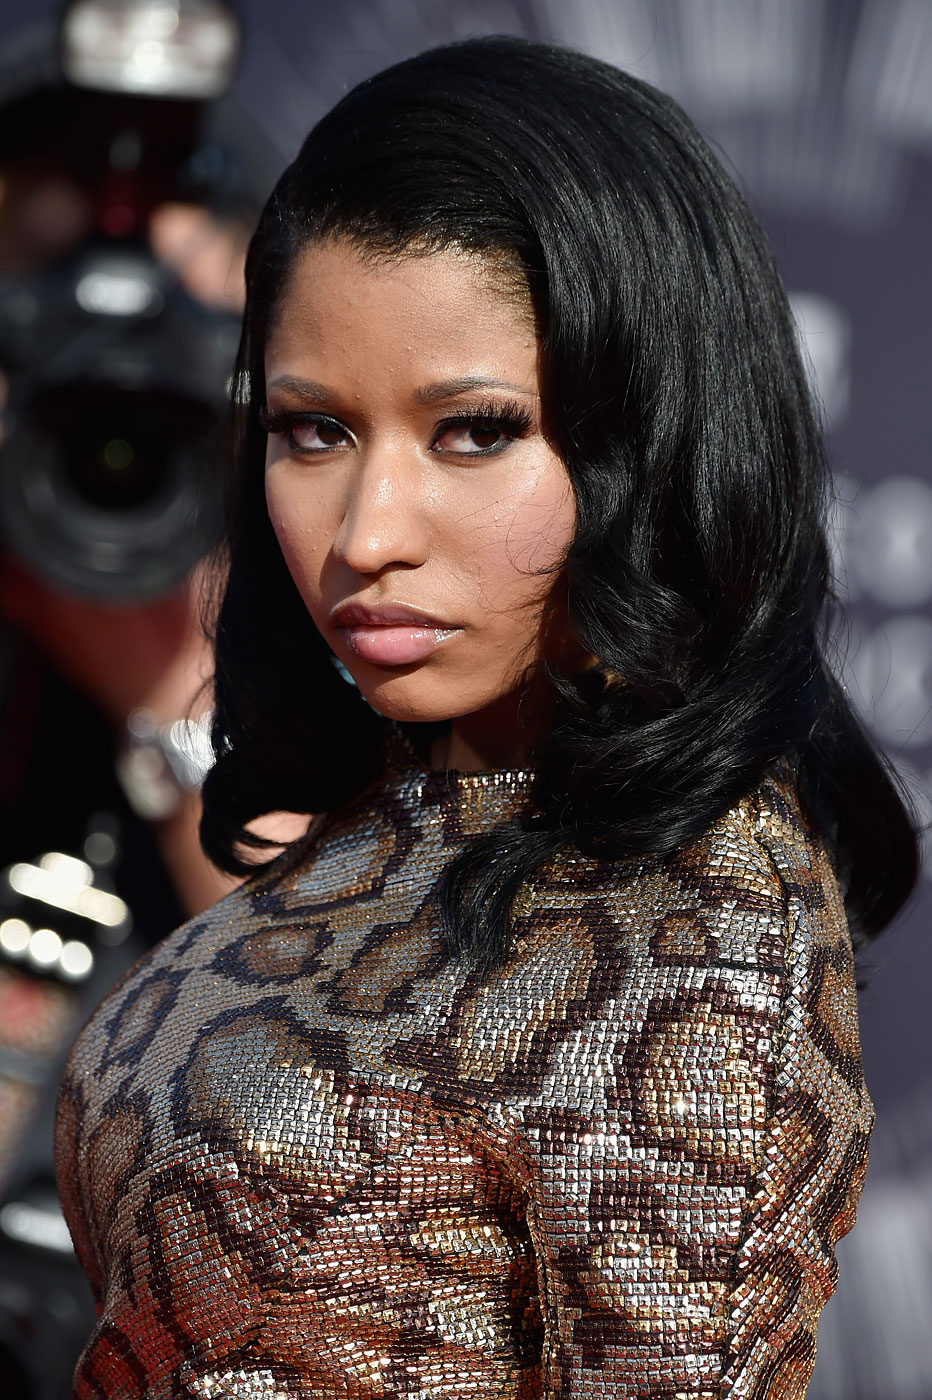 Recording artist Nicki Minaj attends the 2014 MTV Video Music Awards at The Forum on August 24, 2014 in Inglewood, Ca.